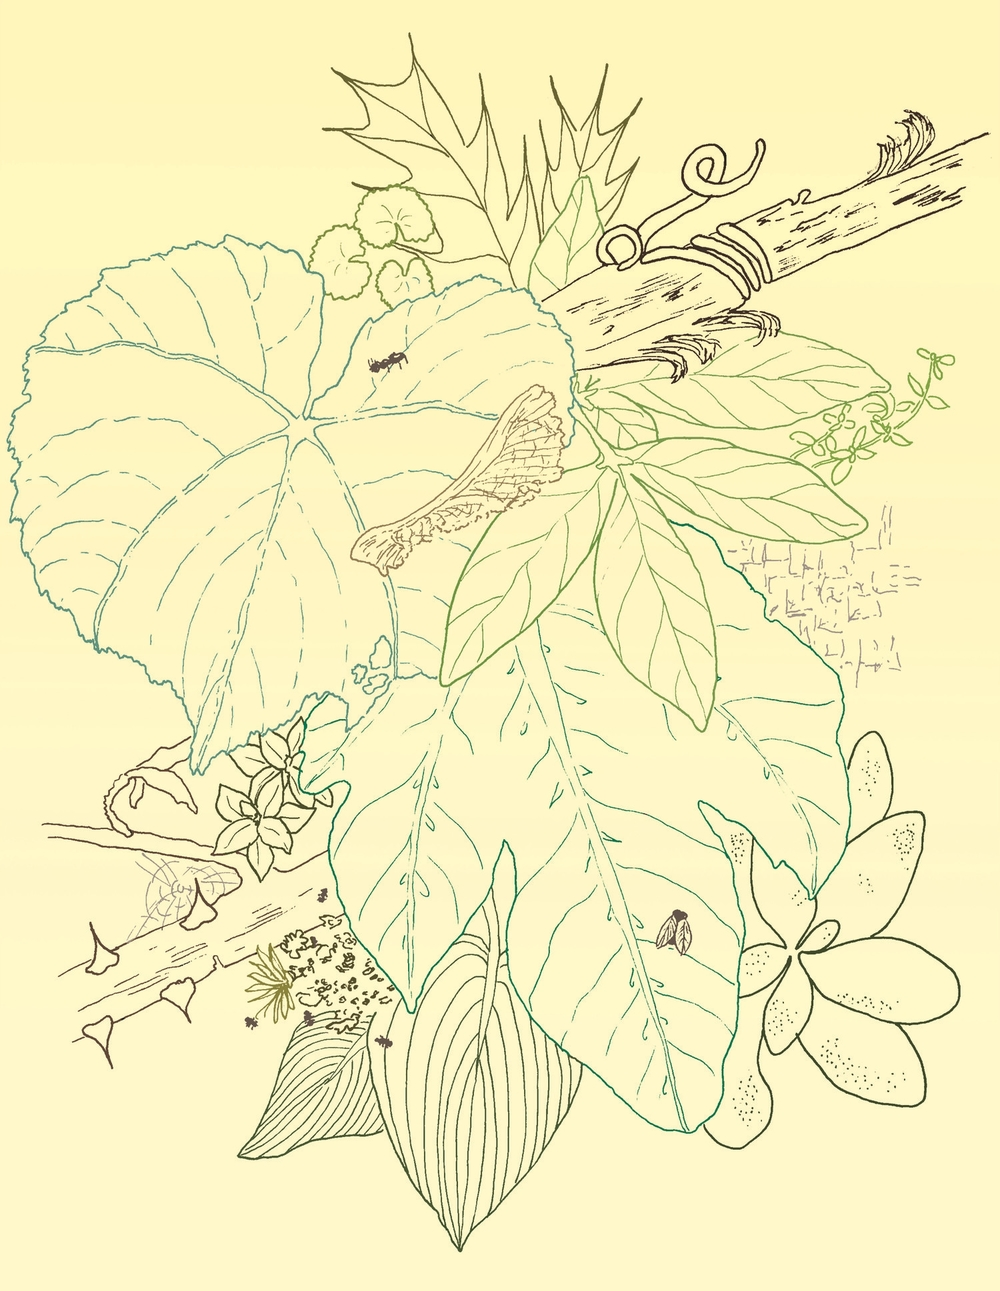 Leaves, Succulents, Sharp Branches